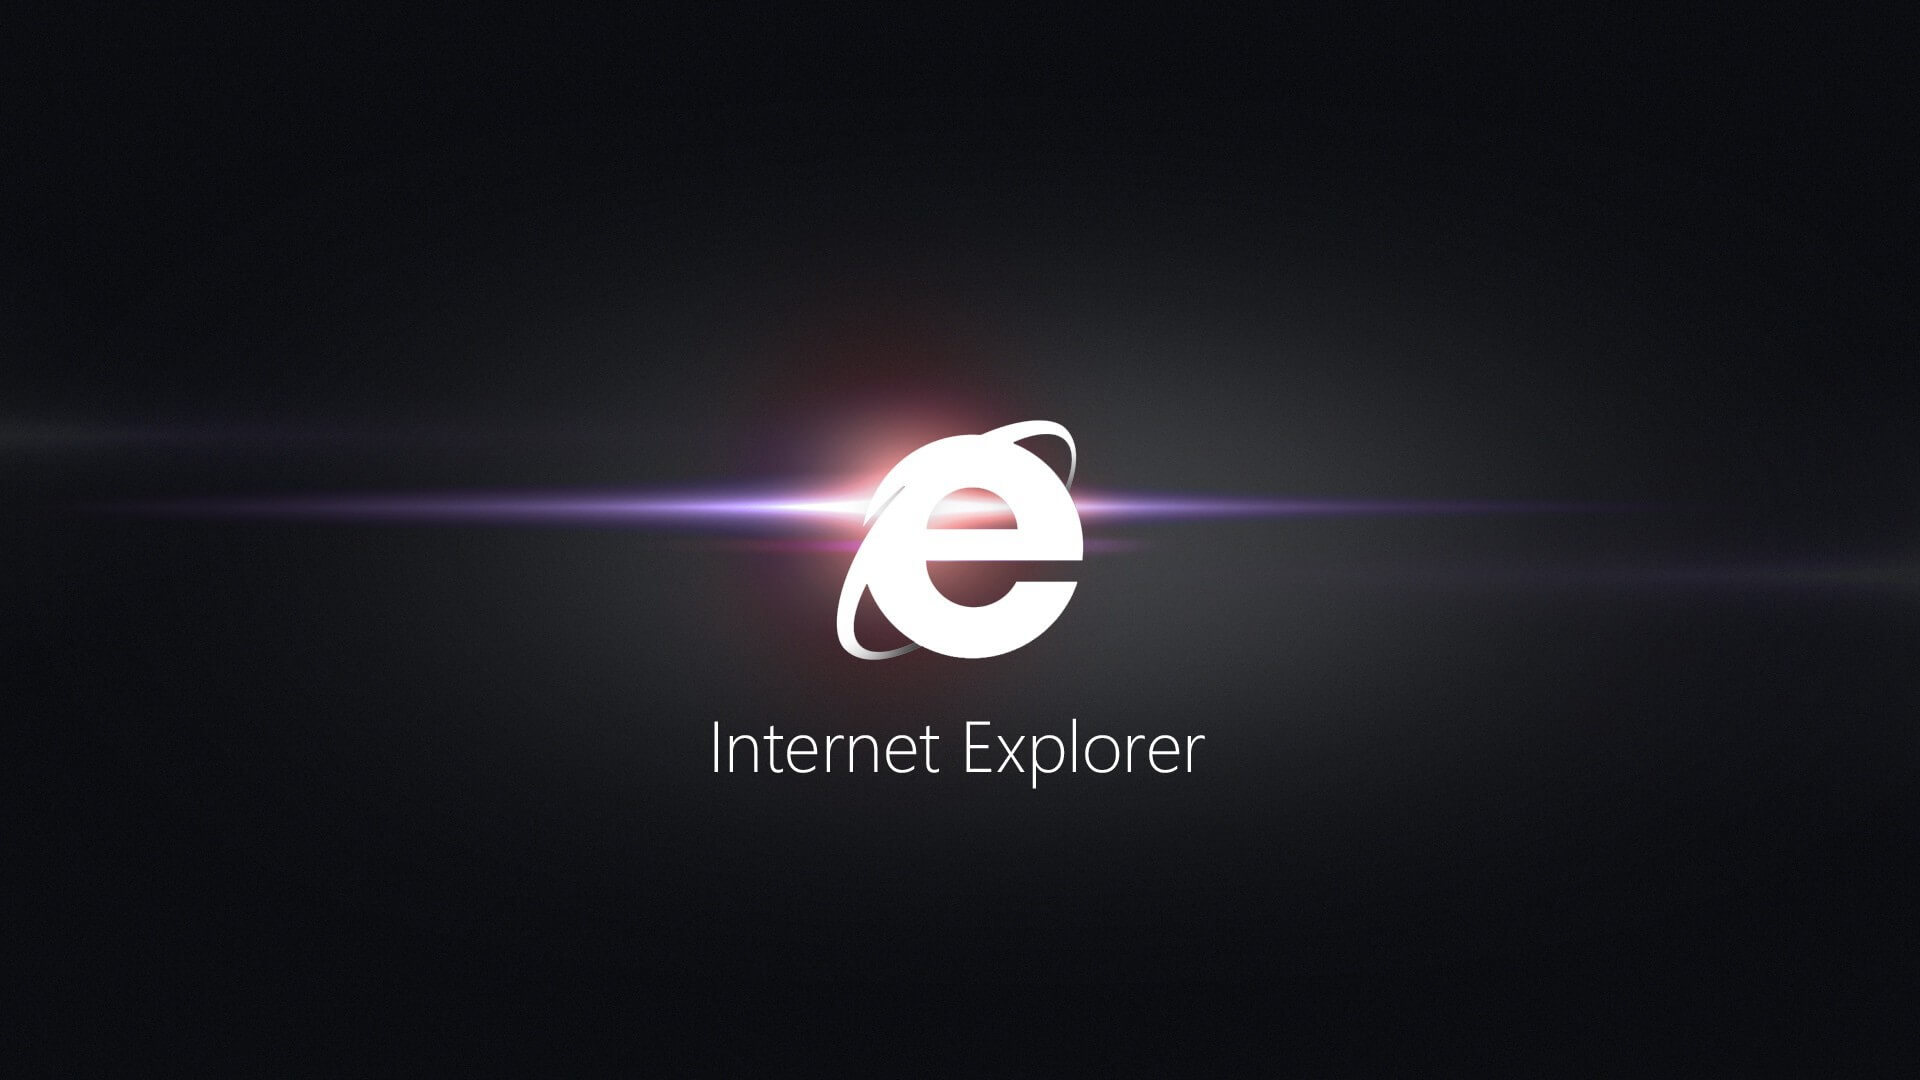 Microsoft Wants You To Get Rid Of Internet Explorer